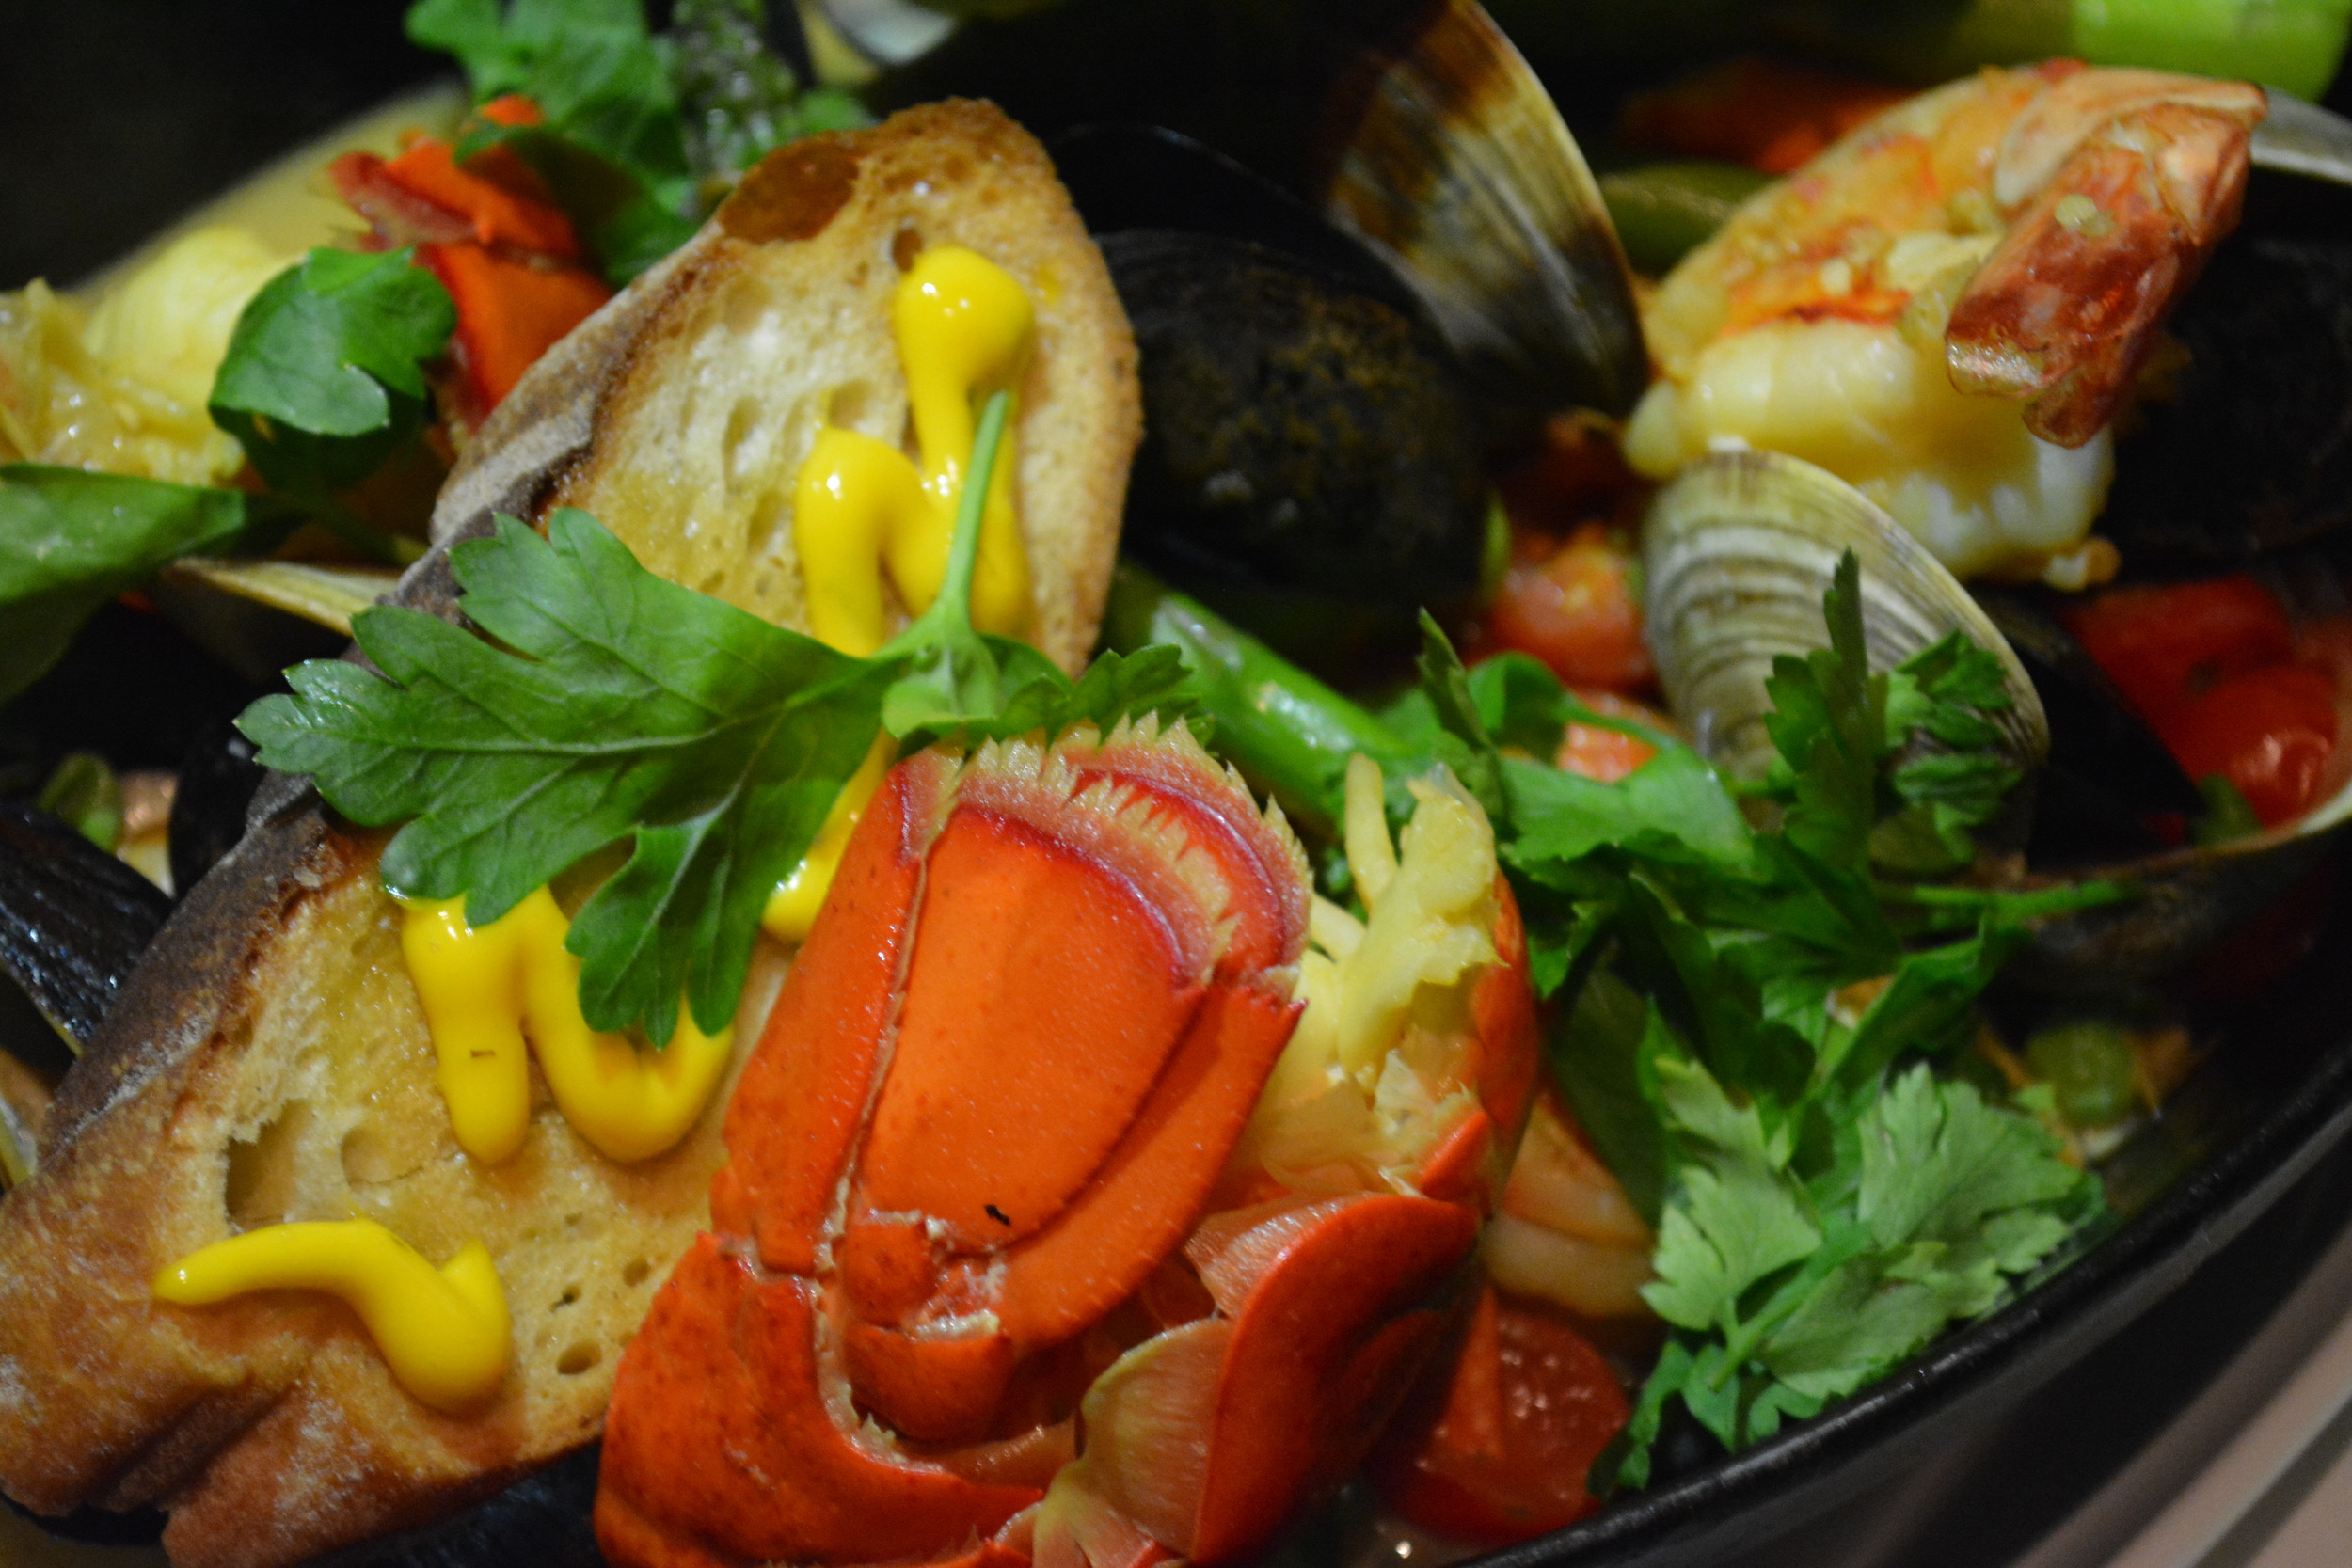 The lobster cioppino ($39) is colorful, consisting of lobster, shrimp, clams, mussels and saffron broth.